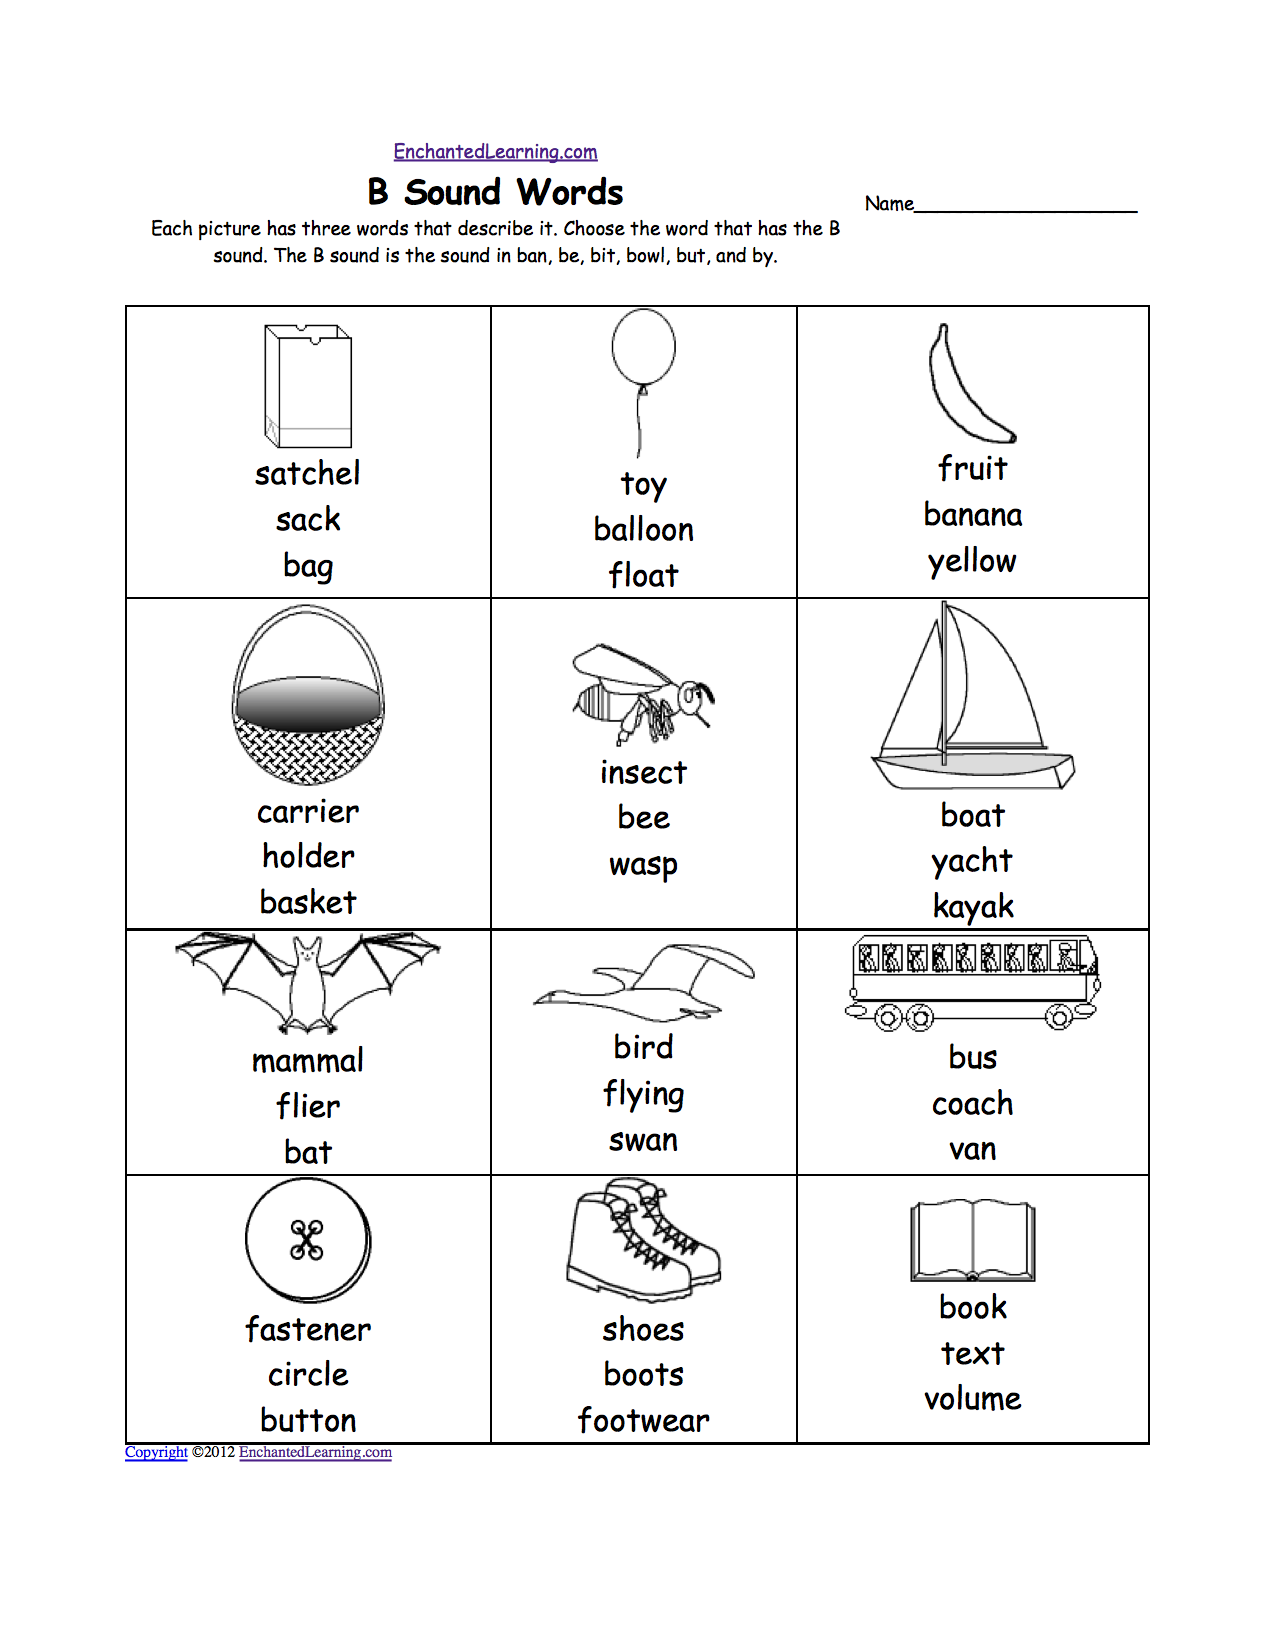 Weirdmailus  Winsome Phonics Worksheets Multiple Choice Worksheets To Print  With Lovely Quotbquot Sound Phonics Worksheet Multiple Choice Each Picture Has Three Words That Describe It Choose The Word That Has A Quotbquot Sound The Quotbquot Sound Is The Sound  With Astounding Free Printable Cursive Worksheets For Rd Grade Also Division Practice Worksheets Rd Grade In Addition Make Predictions Worksheet And Spanish Possessive Adjectives Worksheets As Well As Shape Worksheet Kindergarten Additionally Th Grade Sentence Structure Worksheets From Enchantedlearningcom With Weirdmailus  Lovely Phonics Worksheets Multiple Choice Worksheets To Print  With Astounding Quotbquot Sound Phonics Worksheet Multiple Choice Each Picture Has Three Words That Describe It Choose The Word That Has A Quotbquot Sound The Quotbquot Sound Is The Sound  And Winsome Free Printable Cursive Worksheets For Rd Grade Also Division Practice Worksheets Rd Grade In Addition Make Predictions Worksheet From Enchantedlearningcom